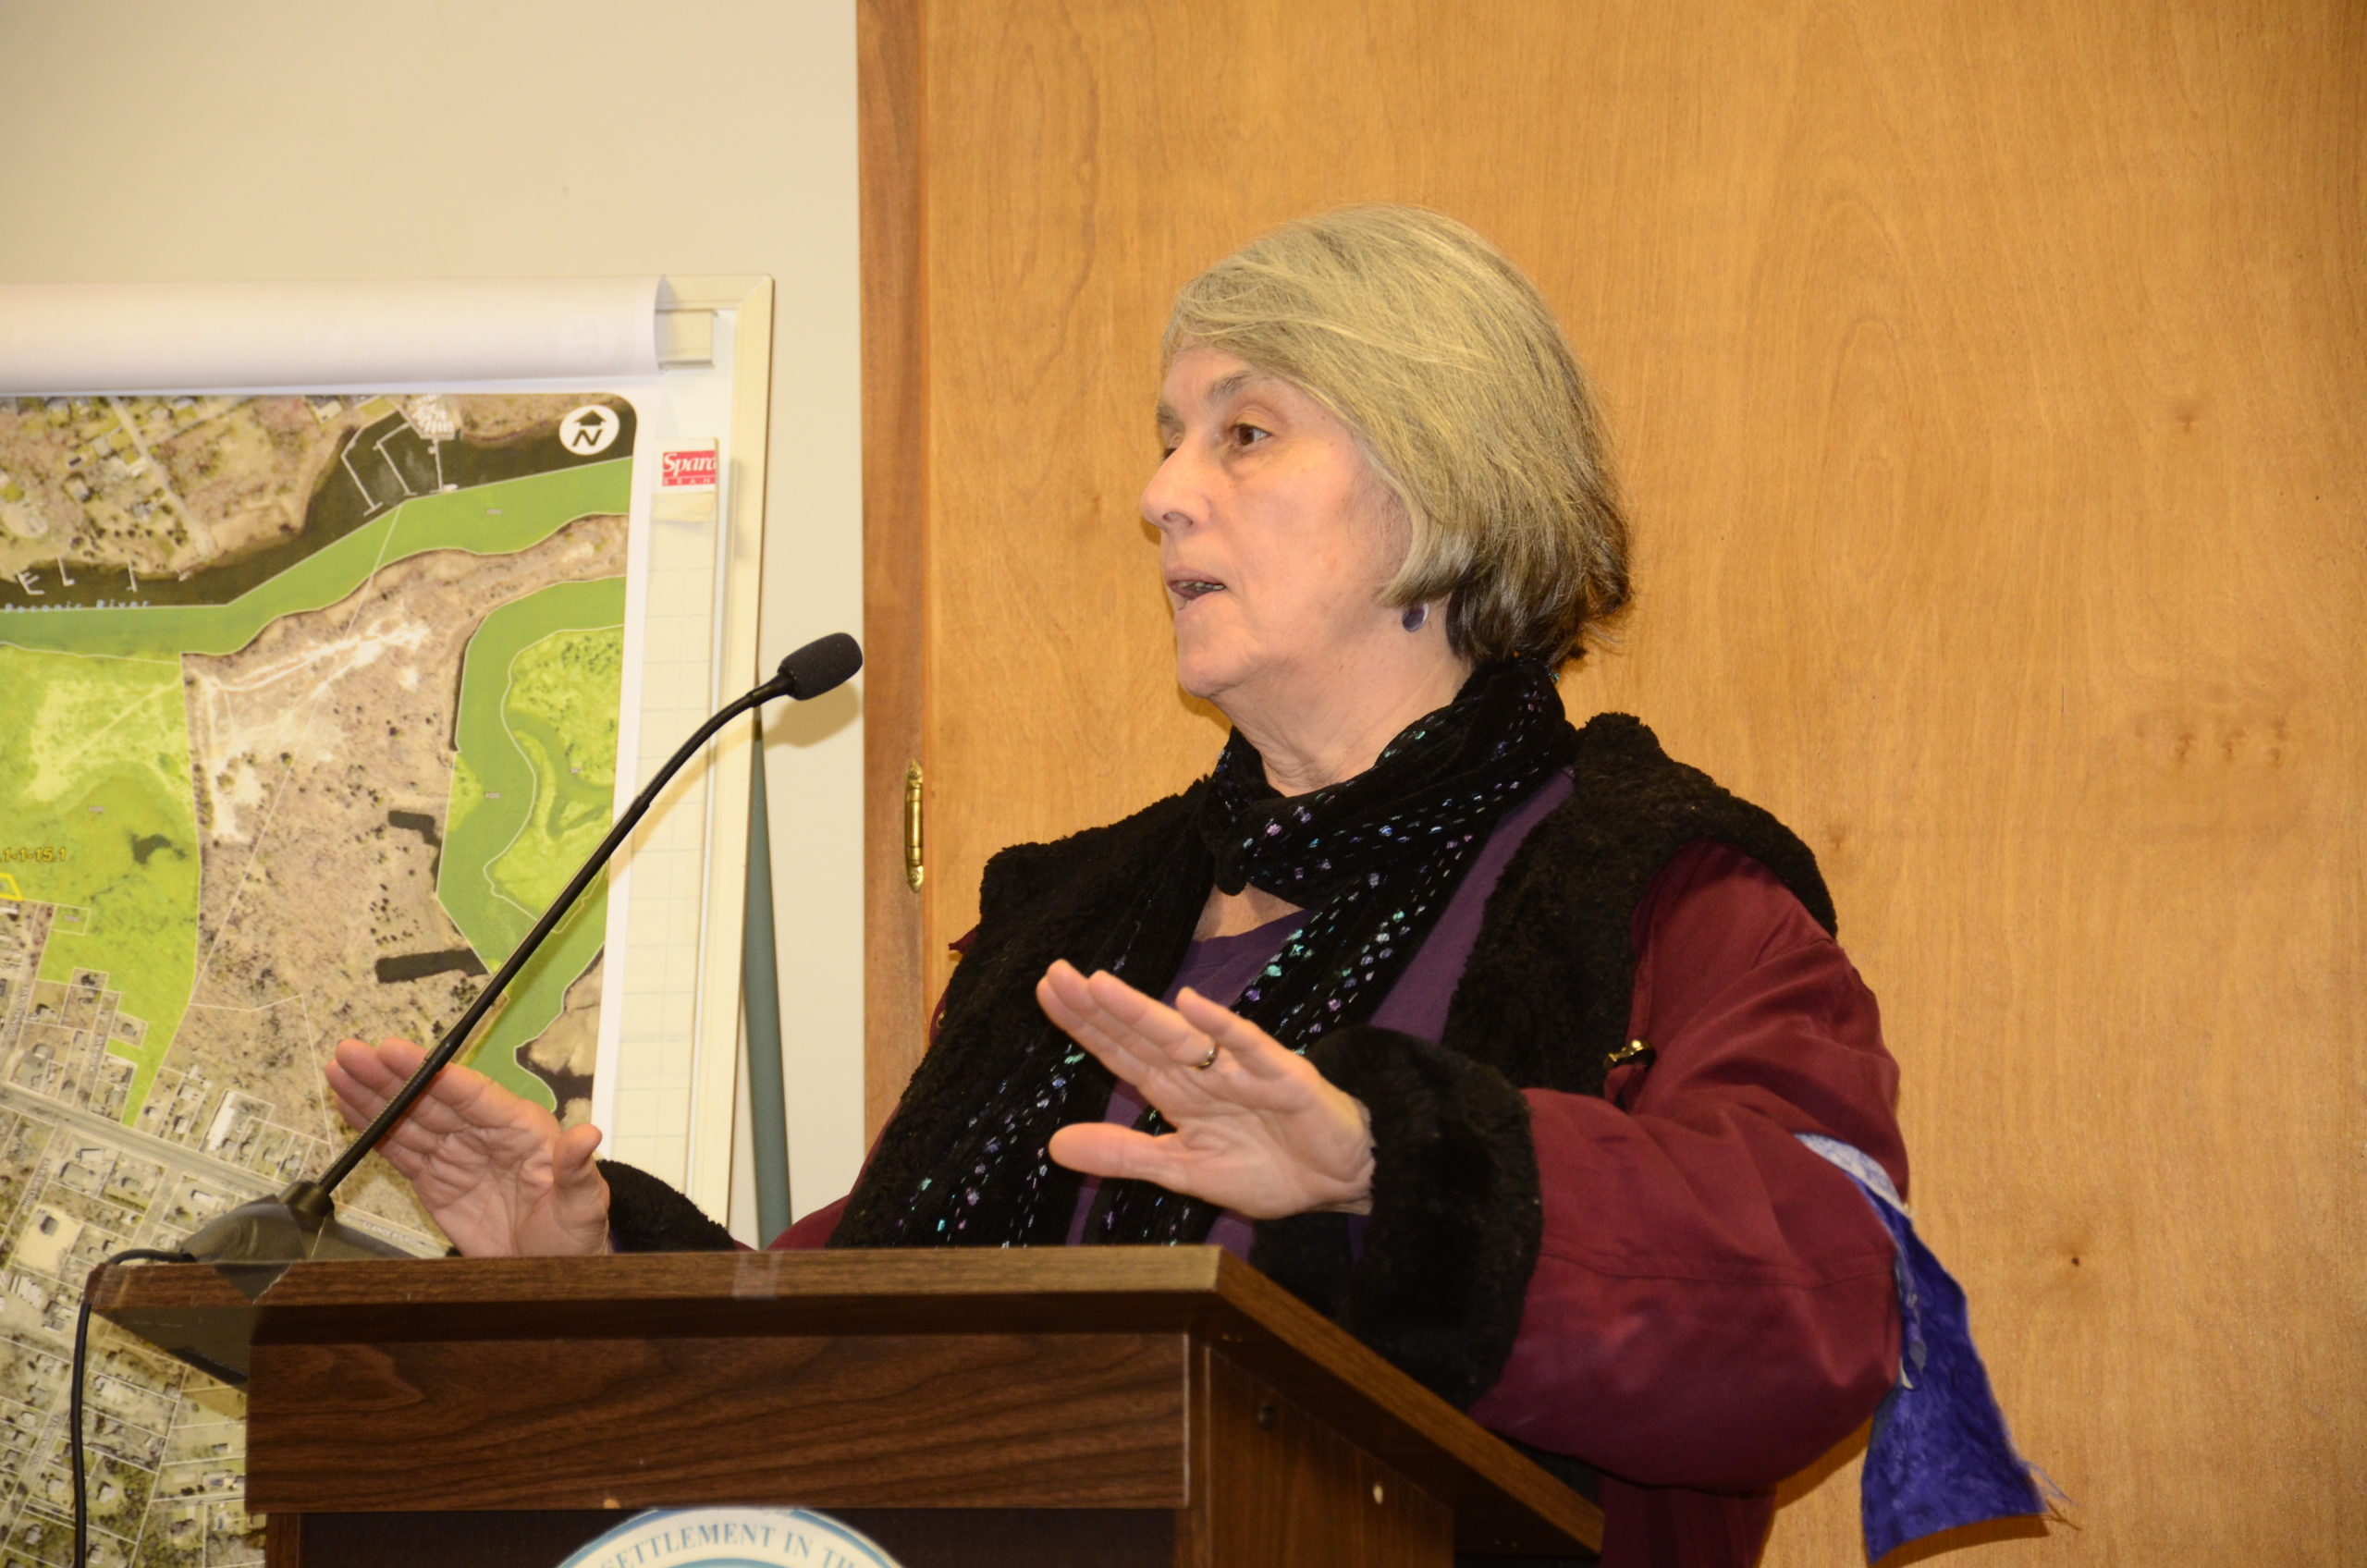 Heidi Rain joined the gathering at Sugar Loaf Tuesday morning before speaking about it at the town board meeting Tuesday afternoon.